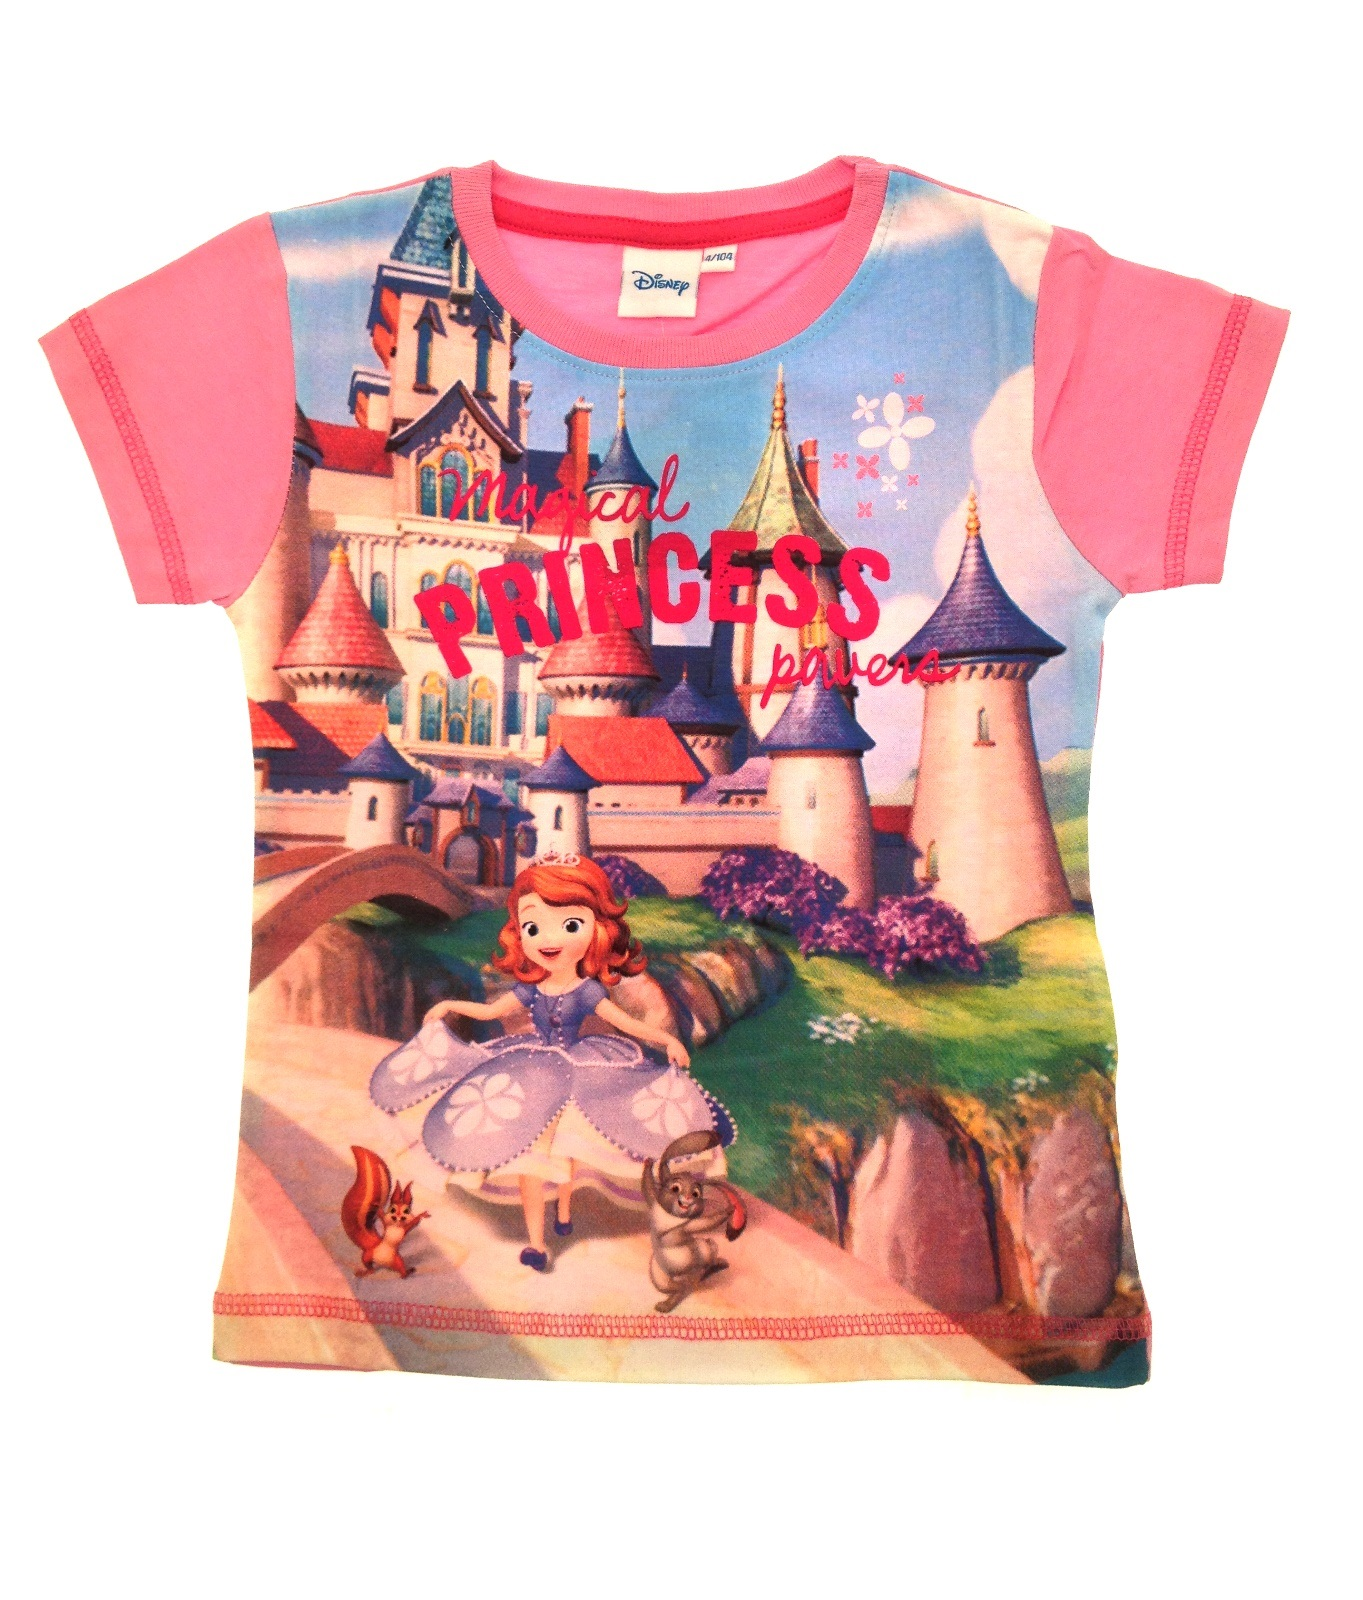 Disney Cinderella T-Shirts for Kids & Babies at Spreadshirt Unique designs day returns Shop Disney Cinderella Kids & Babies T-Shirts now!